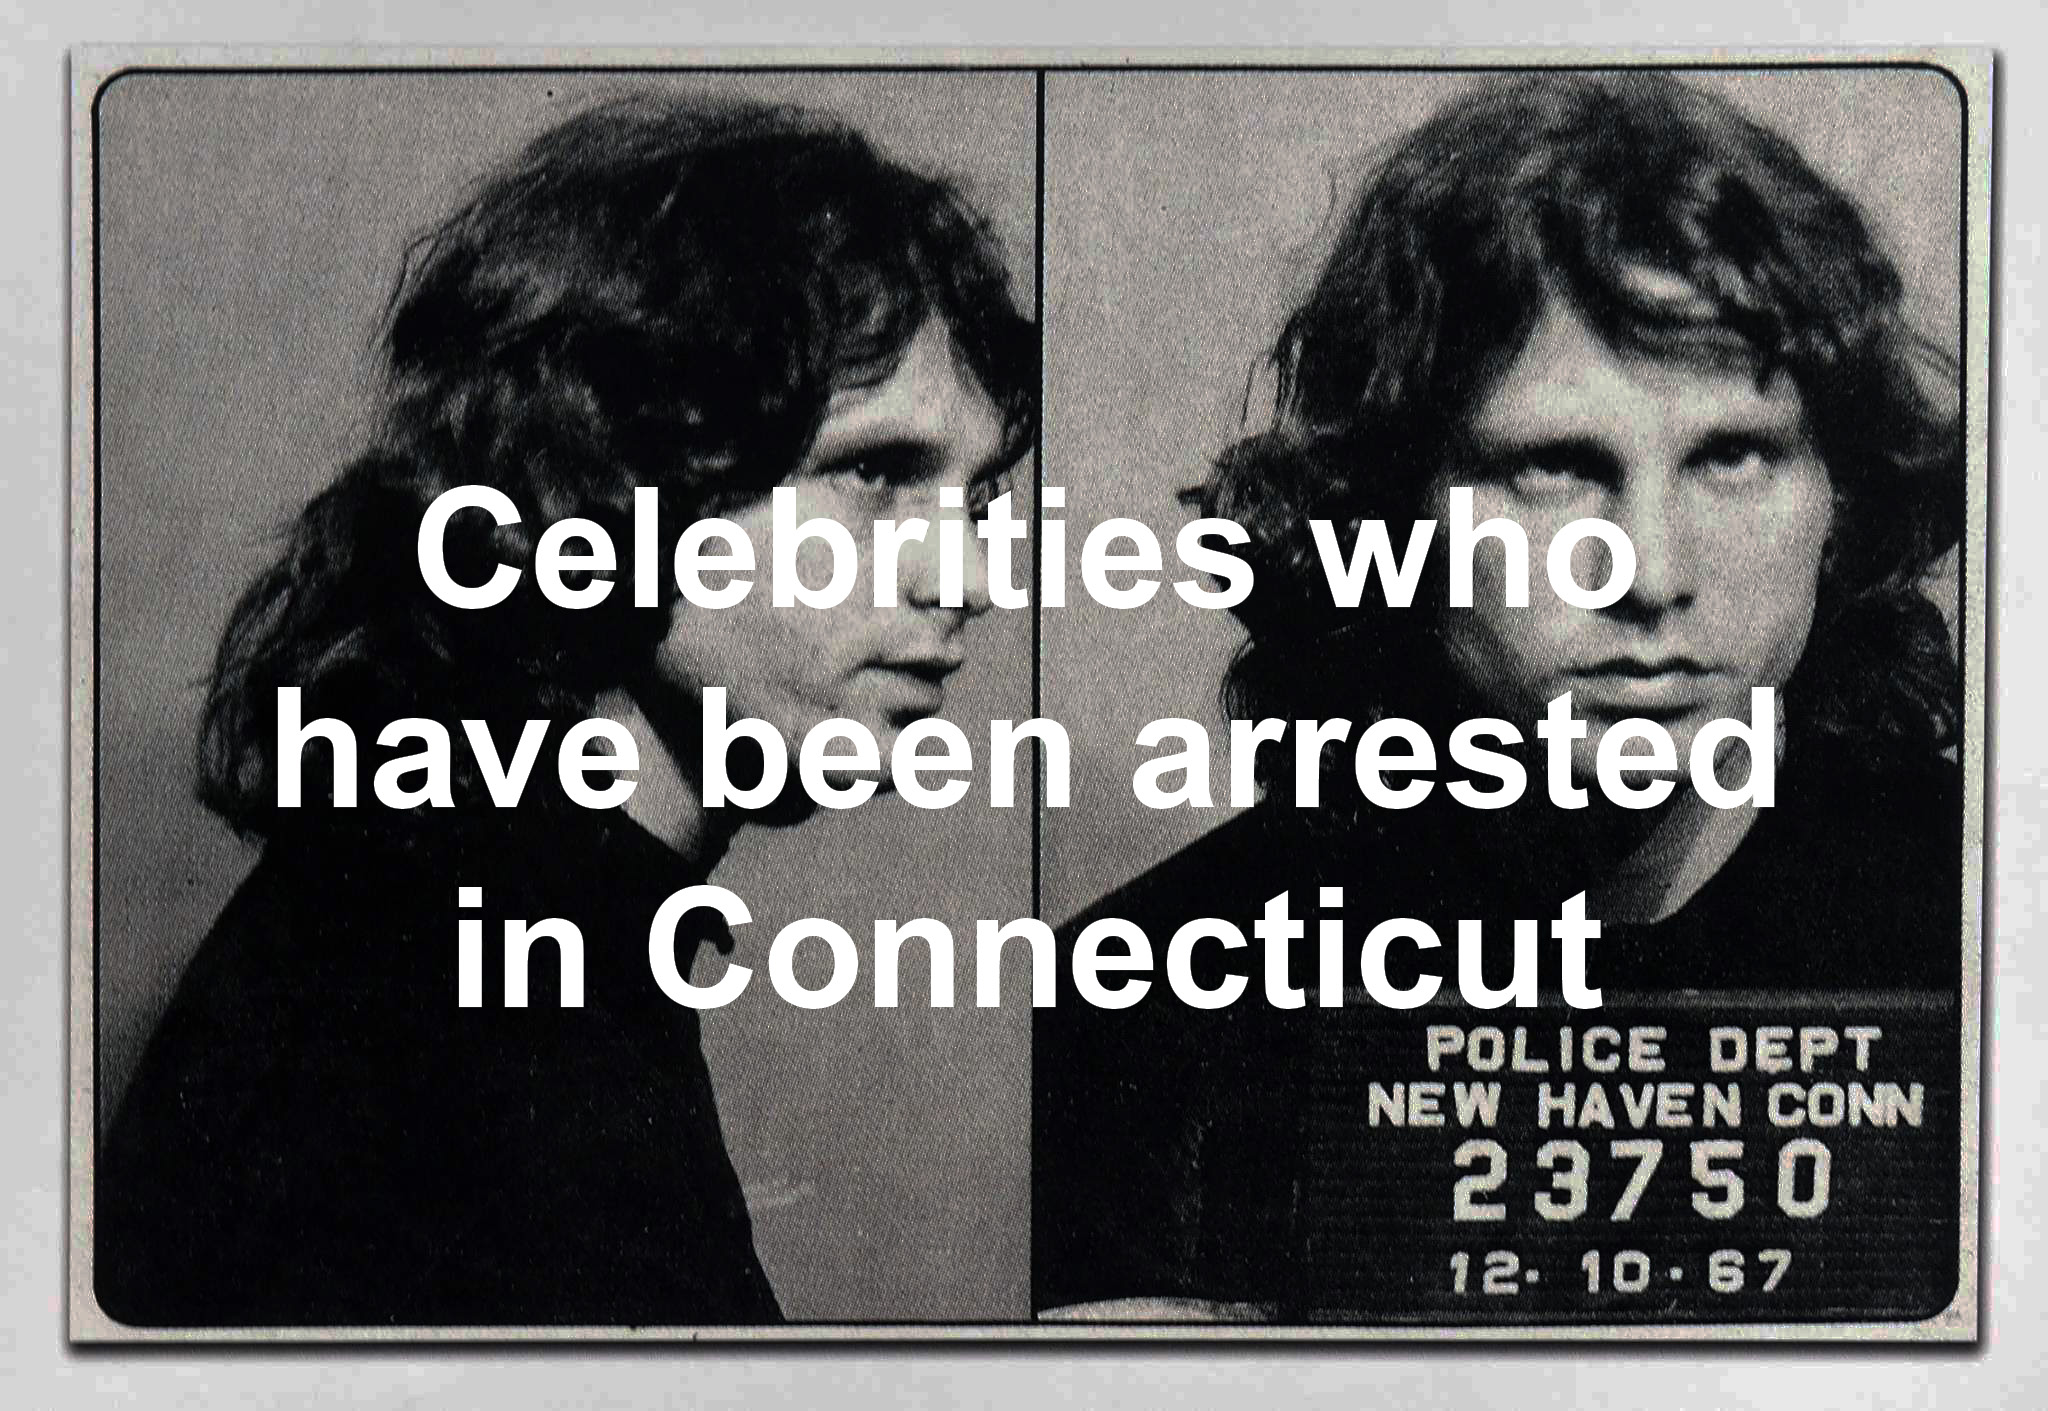 Celebrities who have been arrested in Connecticut